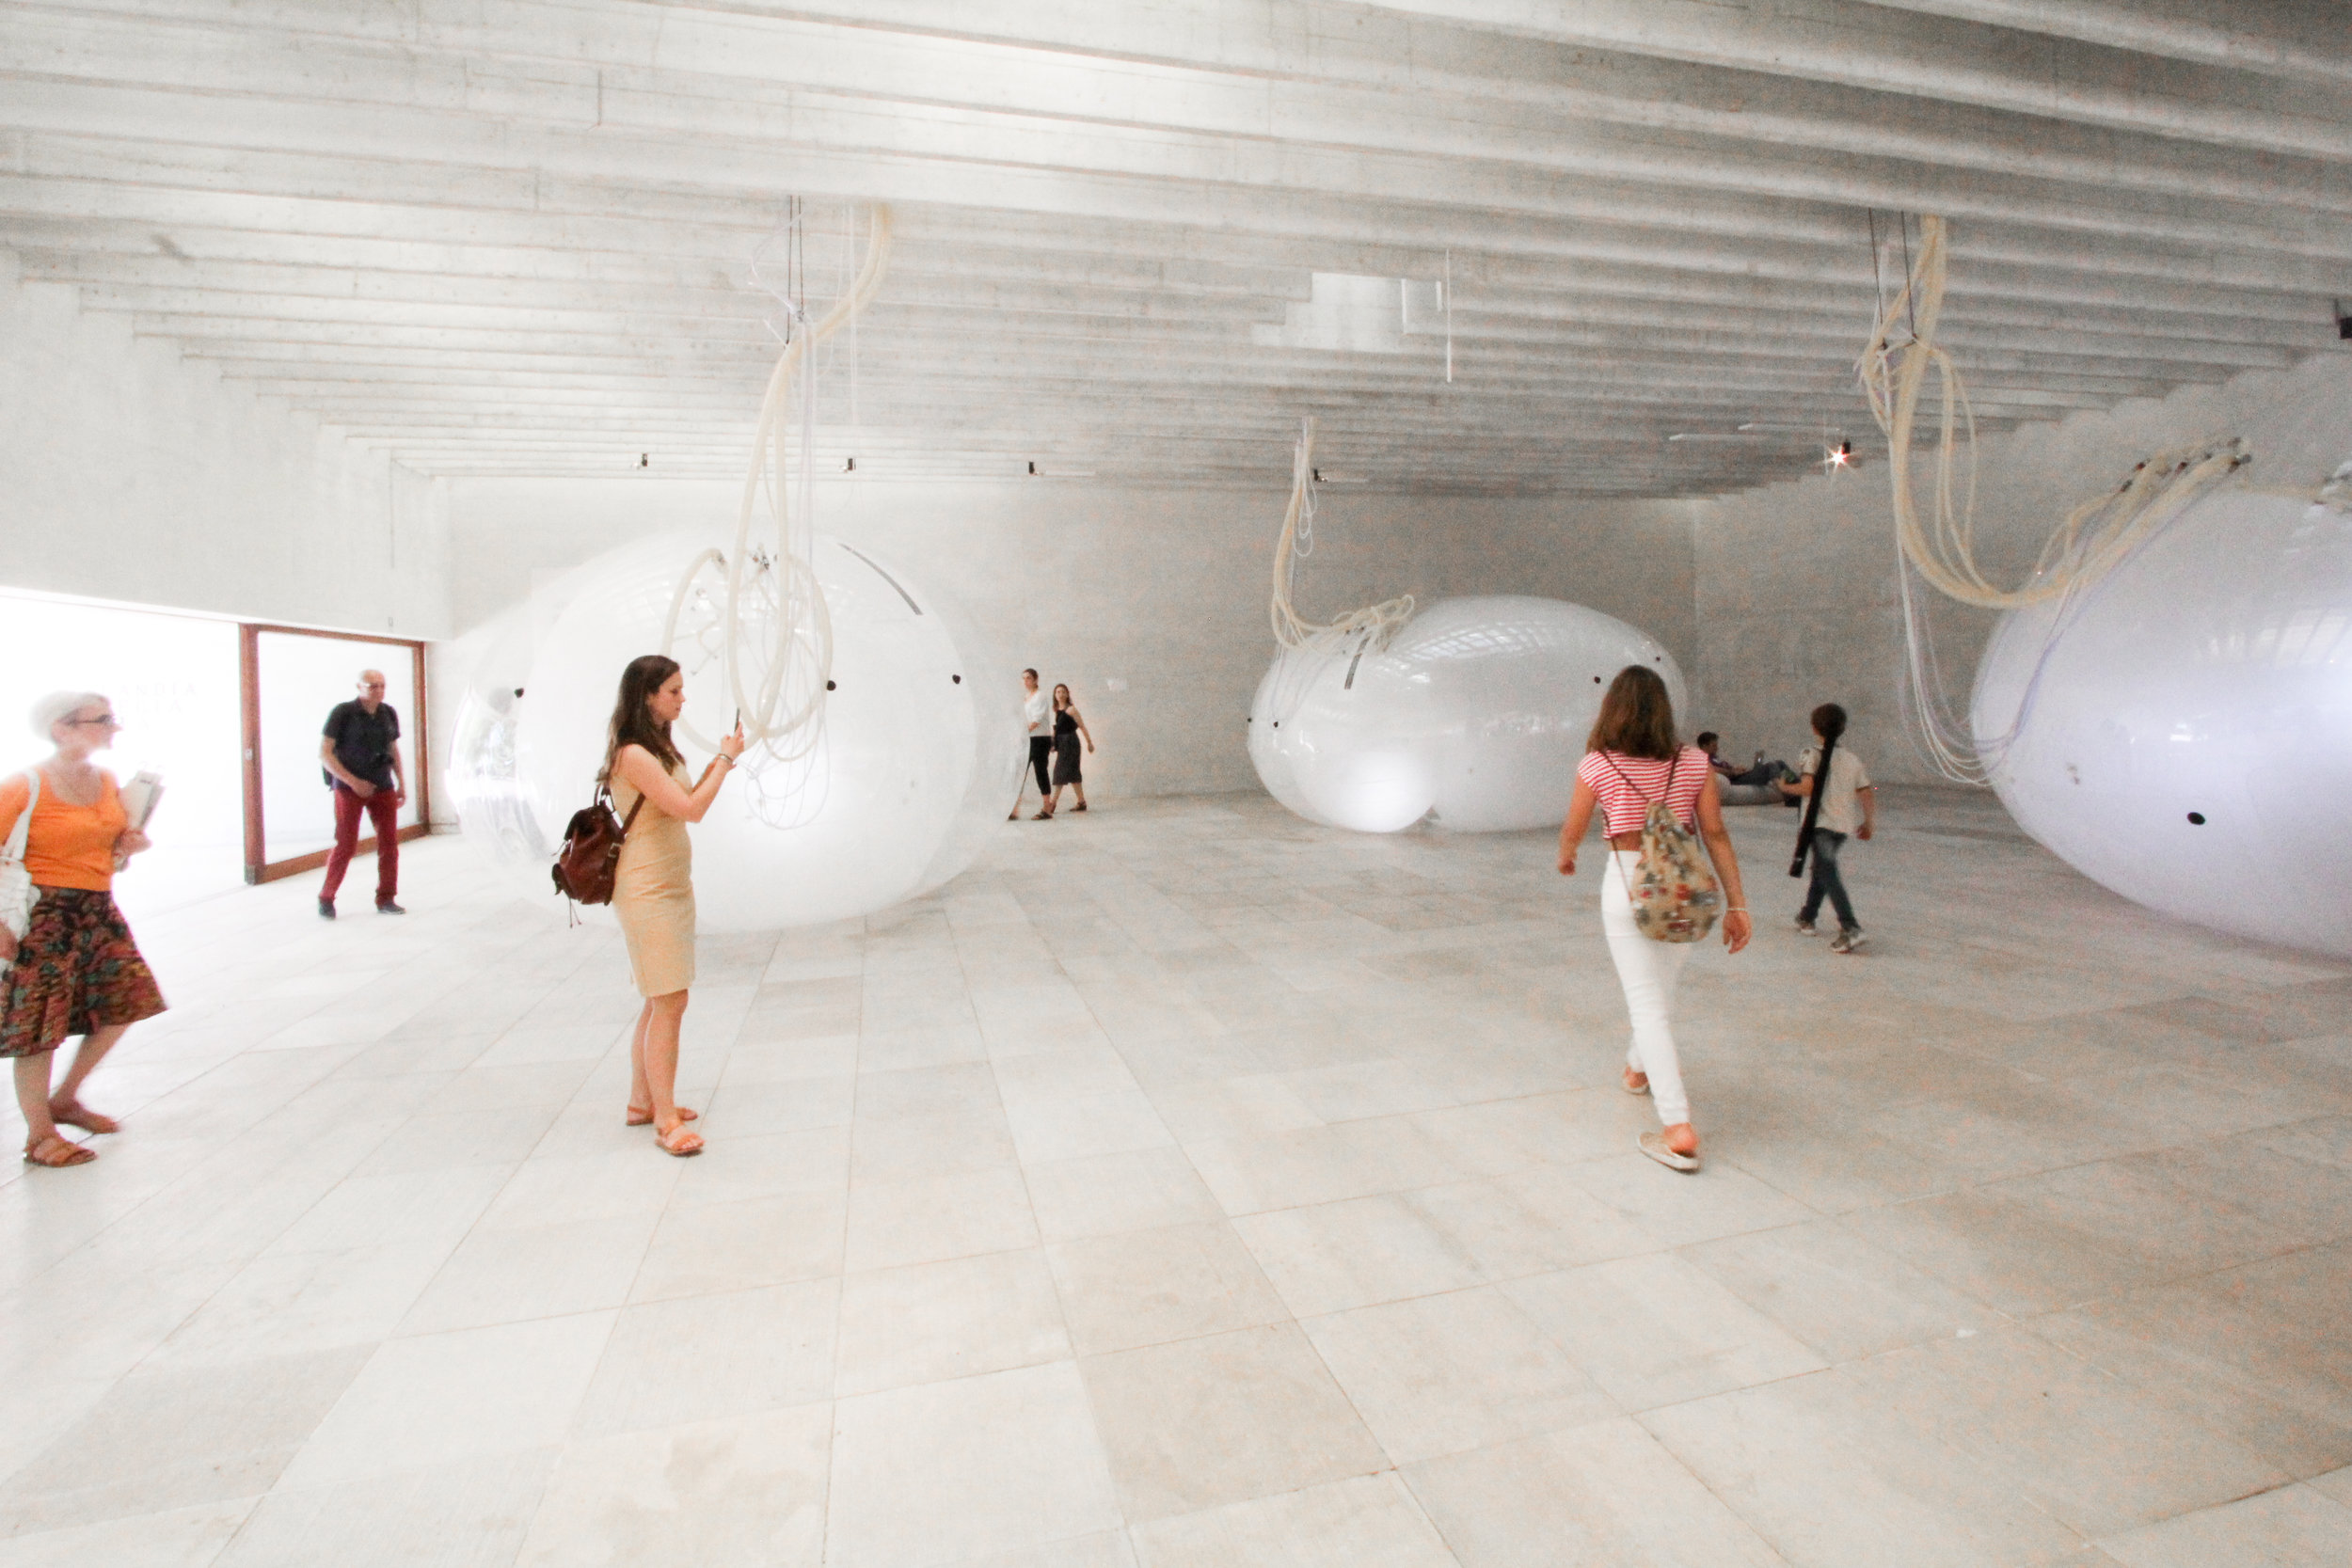 Another Generosity. Nordic Pavilion. Biennale of Architecture 2018. Image ©FUTURECRAFTER